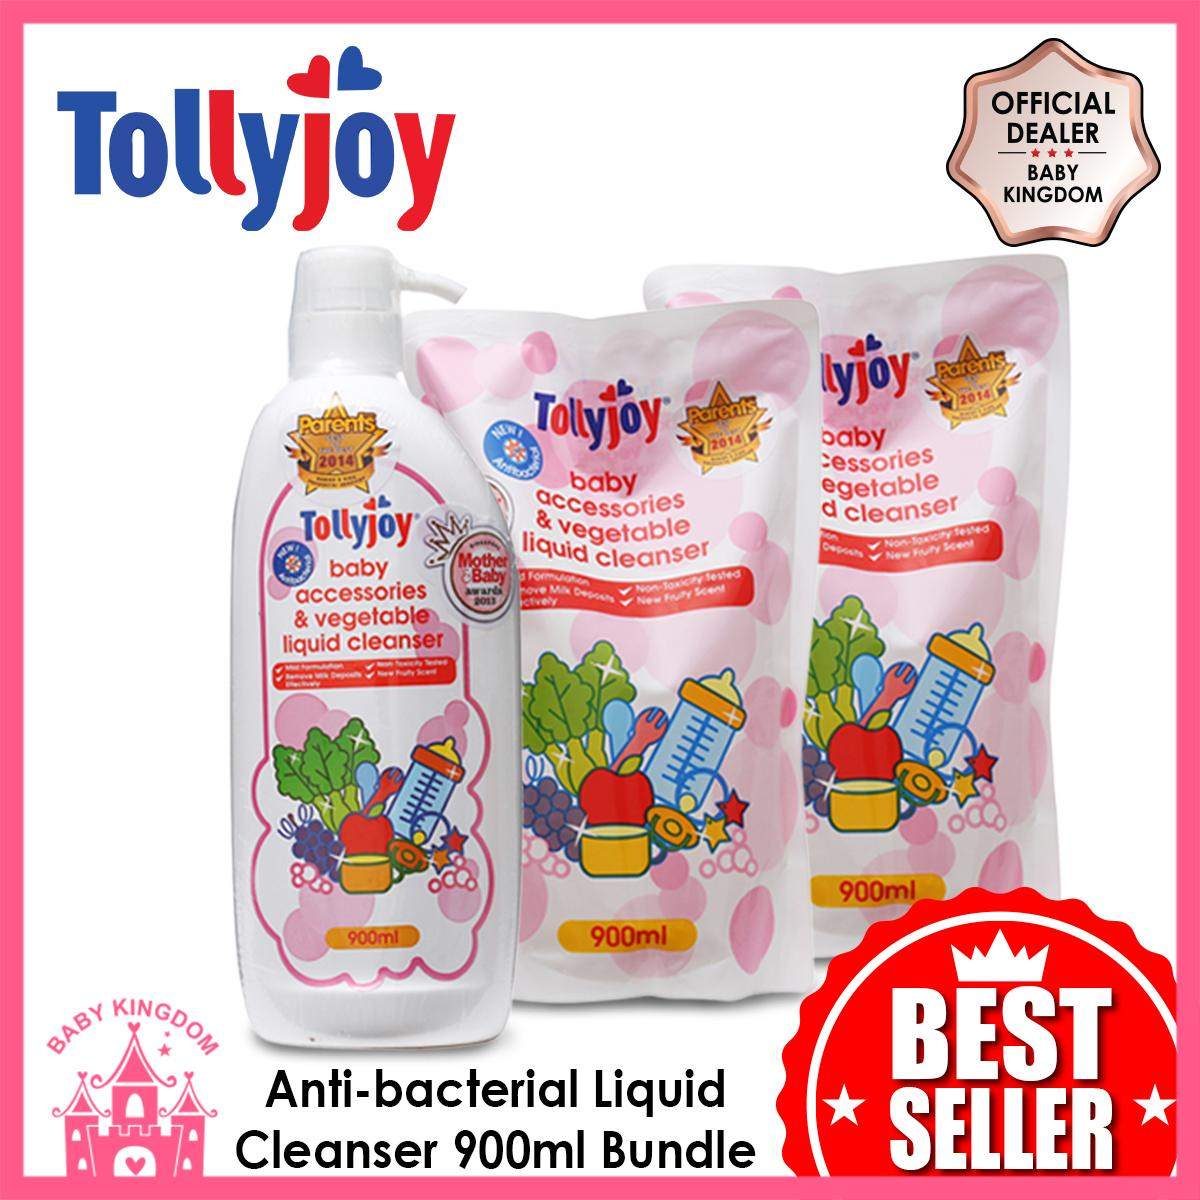 Tollyjoy Antibacterial Baby Accessories And Vegetable Liquid Cleanser Refill (1bottle + 2refills) By Baby Kingdom.